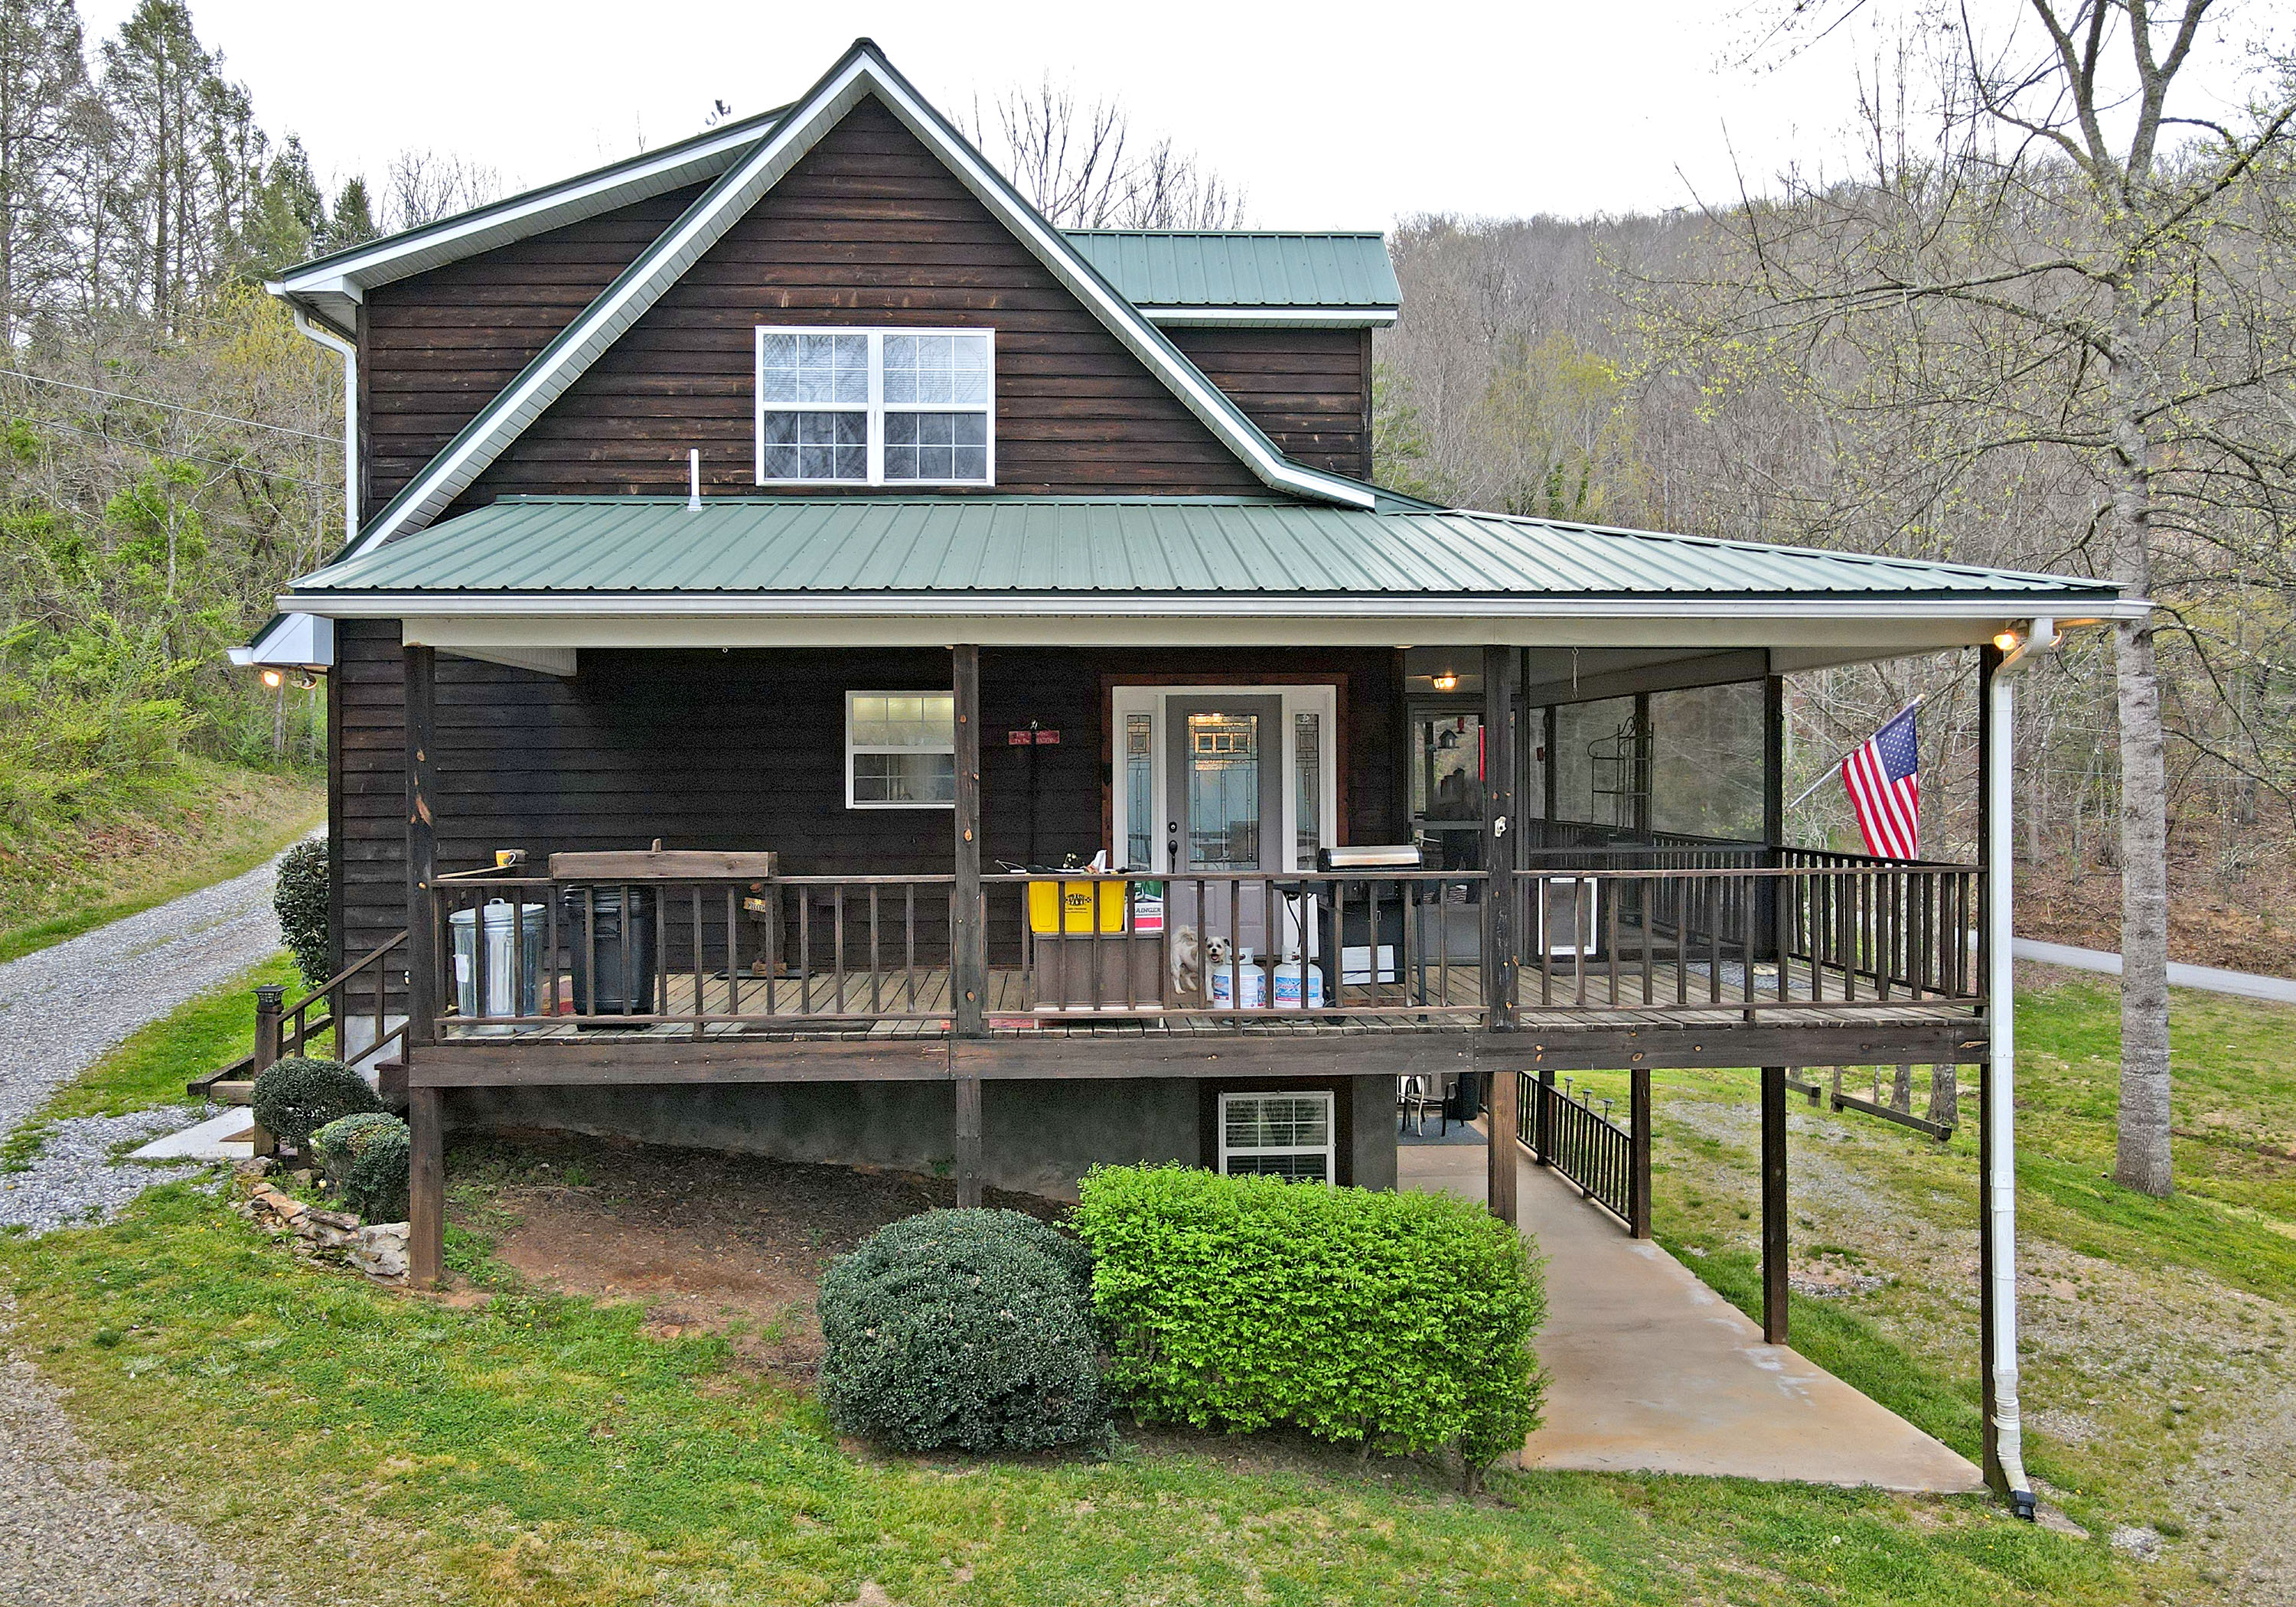 257 Chaffin Street, Blairsville, Georgia 30512, 3 Bedrooms Bedrooms, ,7 BathroomsBathrooms,Single Family,For Sale,257 Chaffin Street,8957720